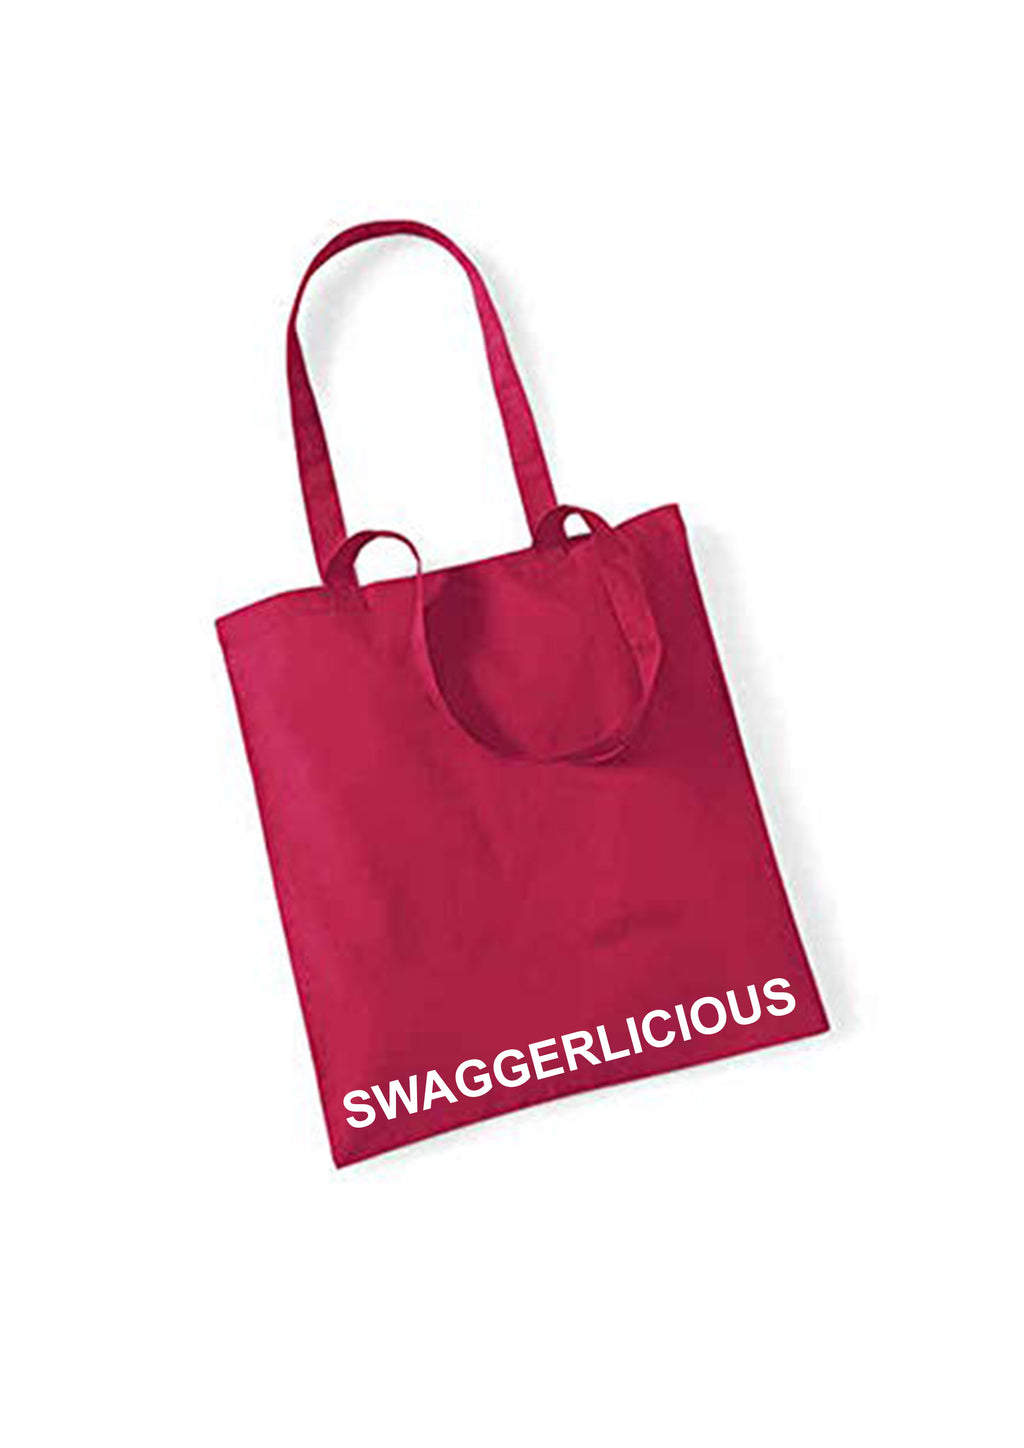 MAGENTA SWAGGERLICIOUS TOTE BAG - swaggerlicious-clothing.com